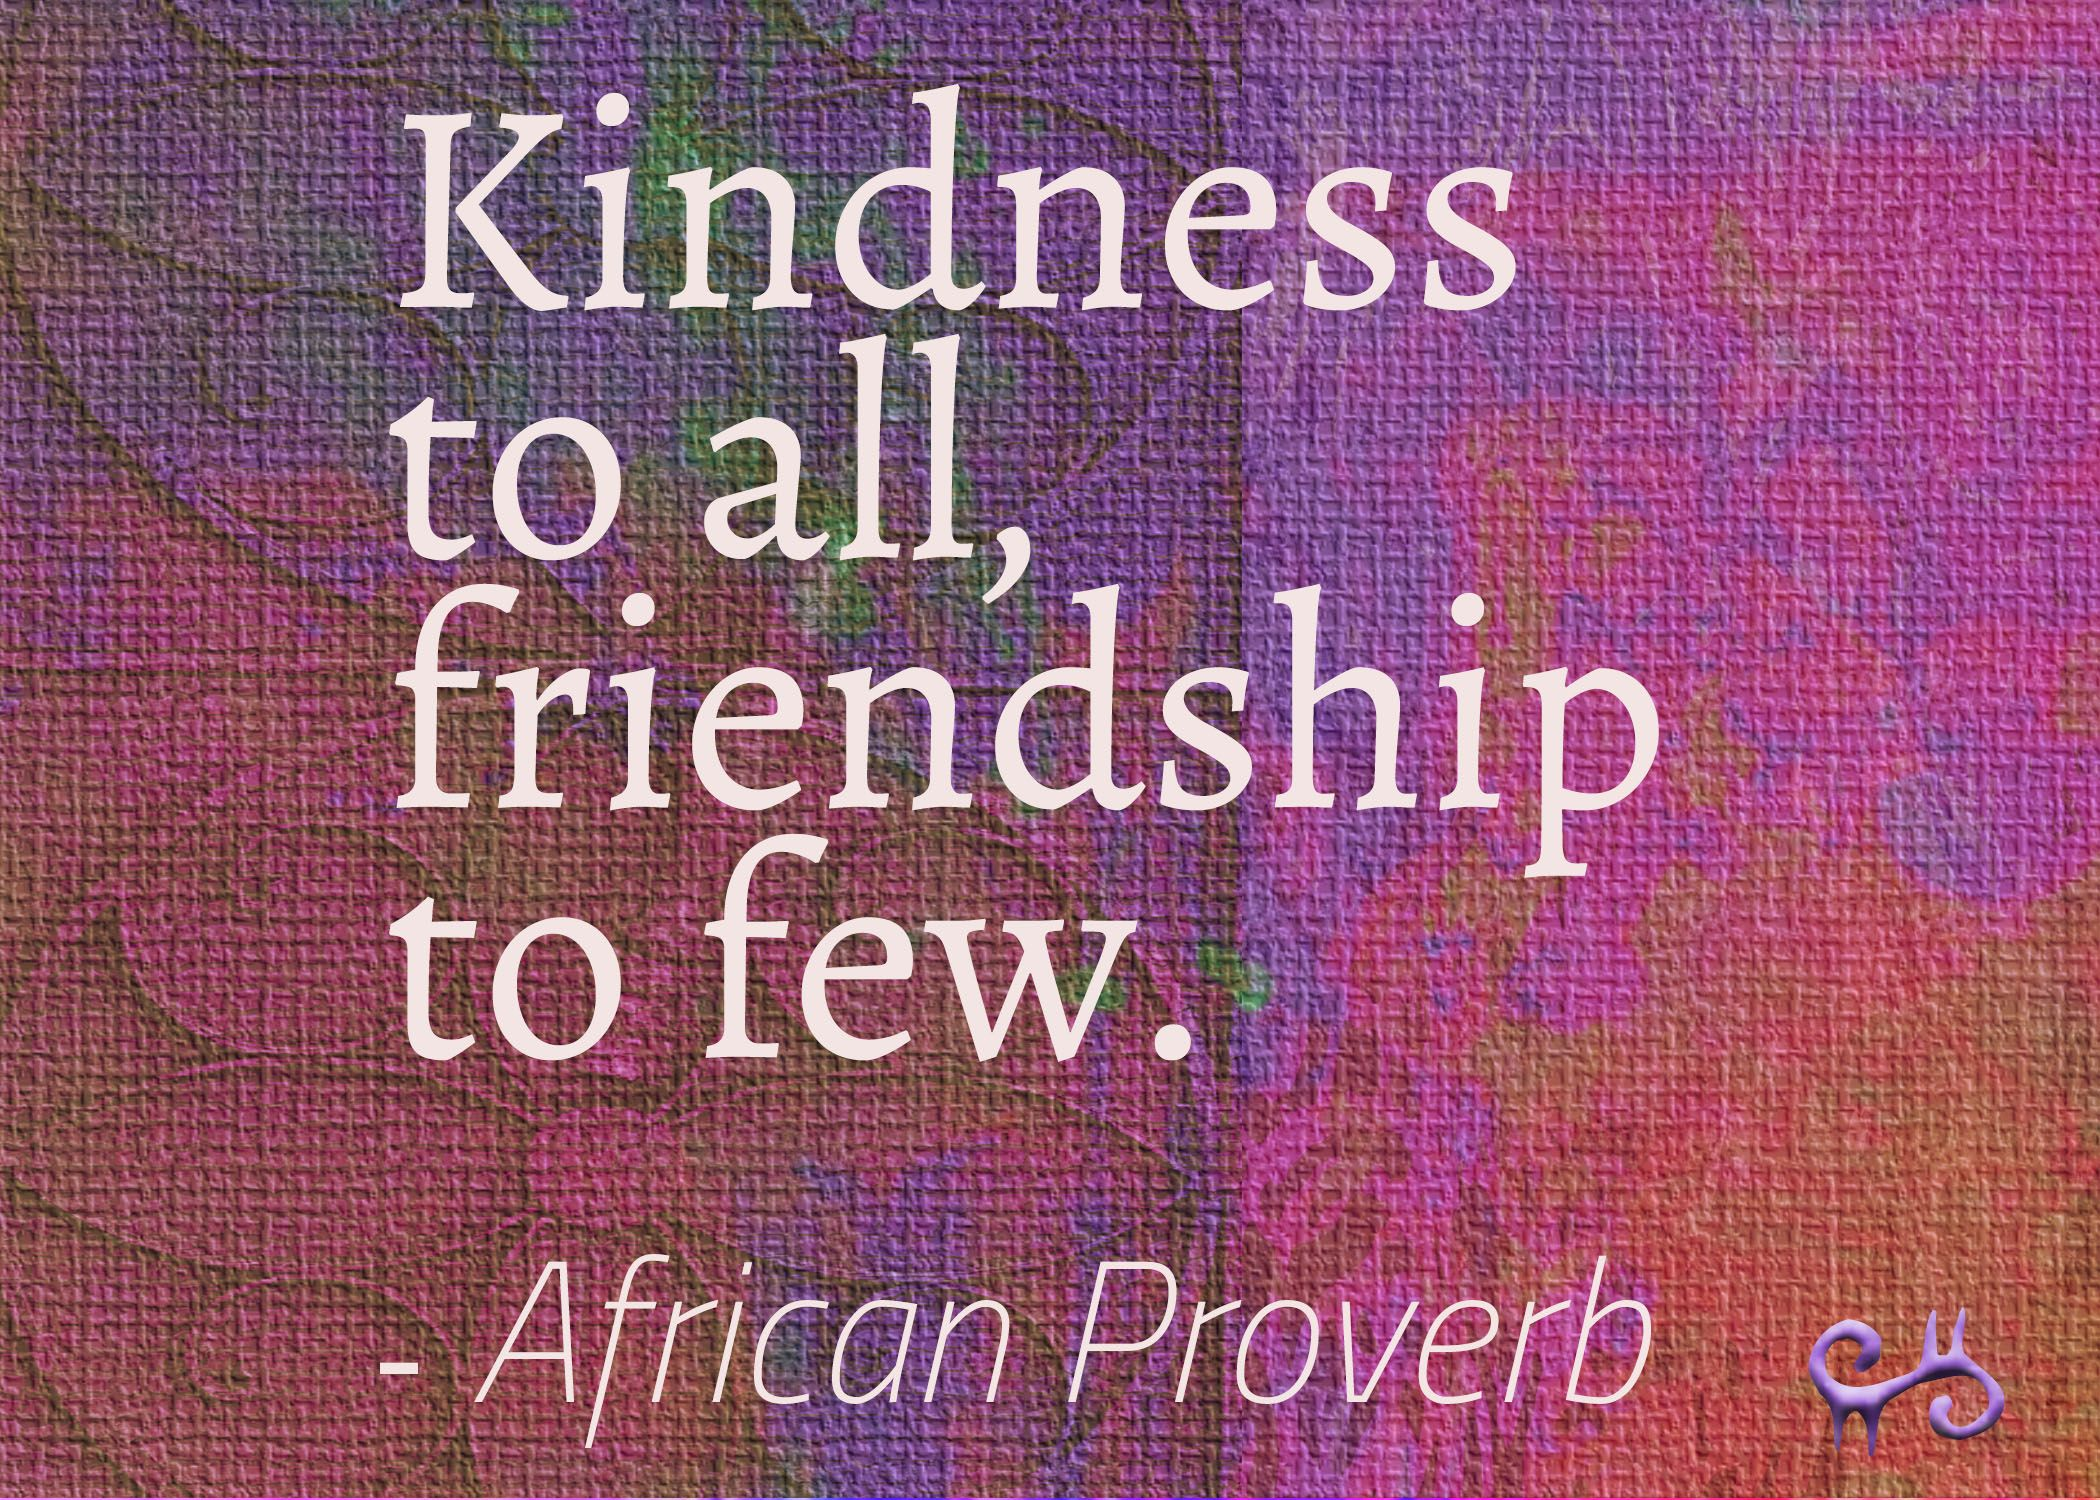 Sayings About Kindness And Friendship : Kindness to all friendship few african proverb